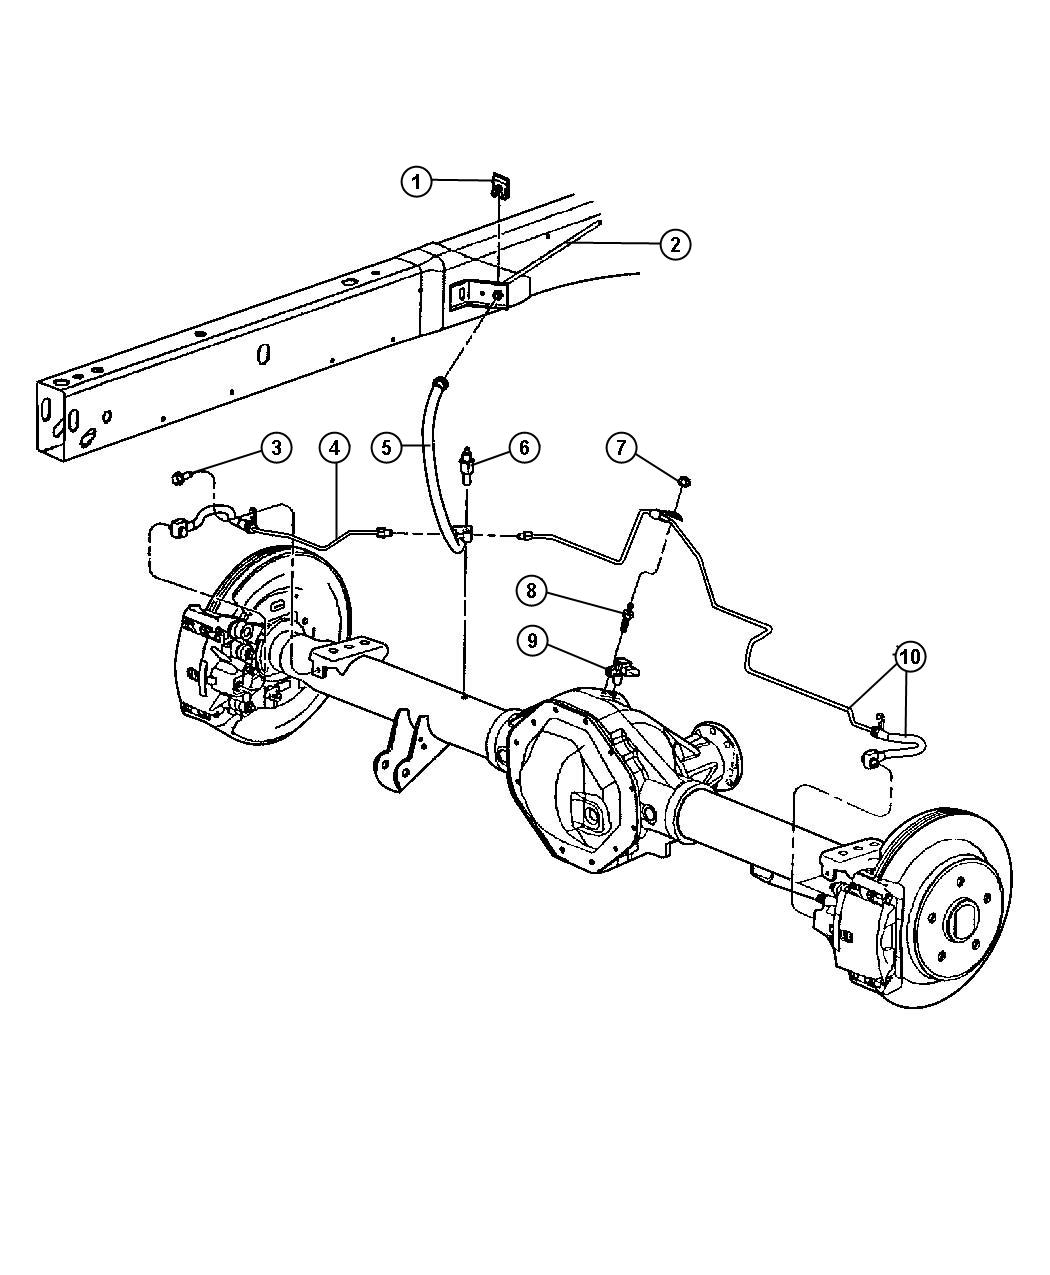 Lines and Hoses,Brake,Rear,with Rear Disc Brakes.